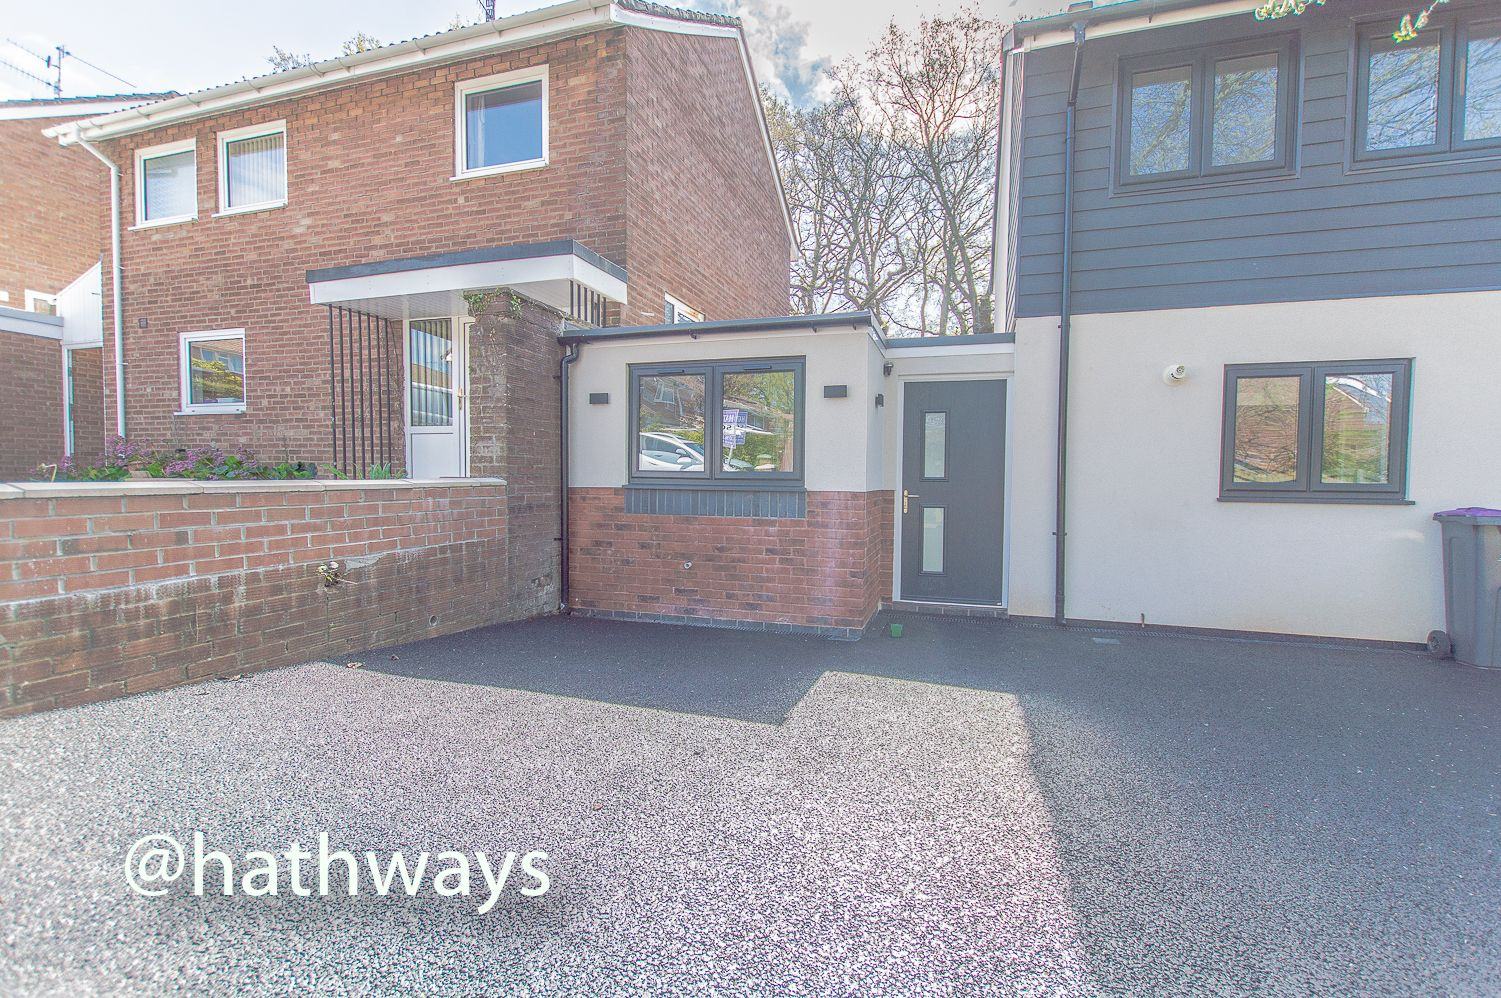 3 bed house for sale in Garw Wood Drive 57